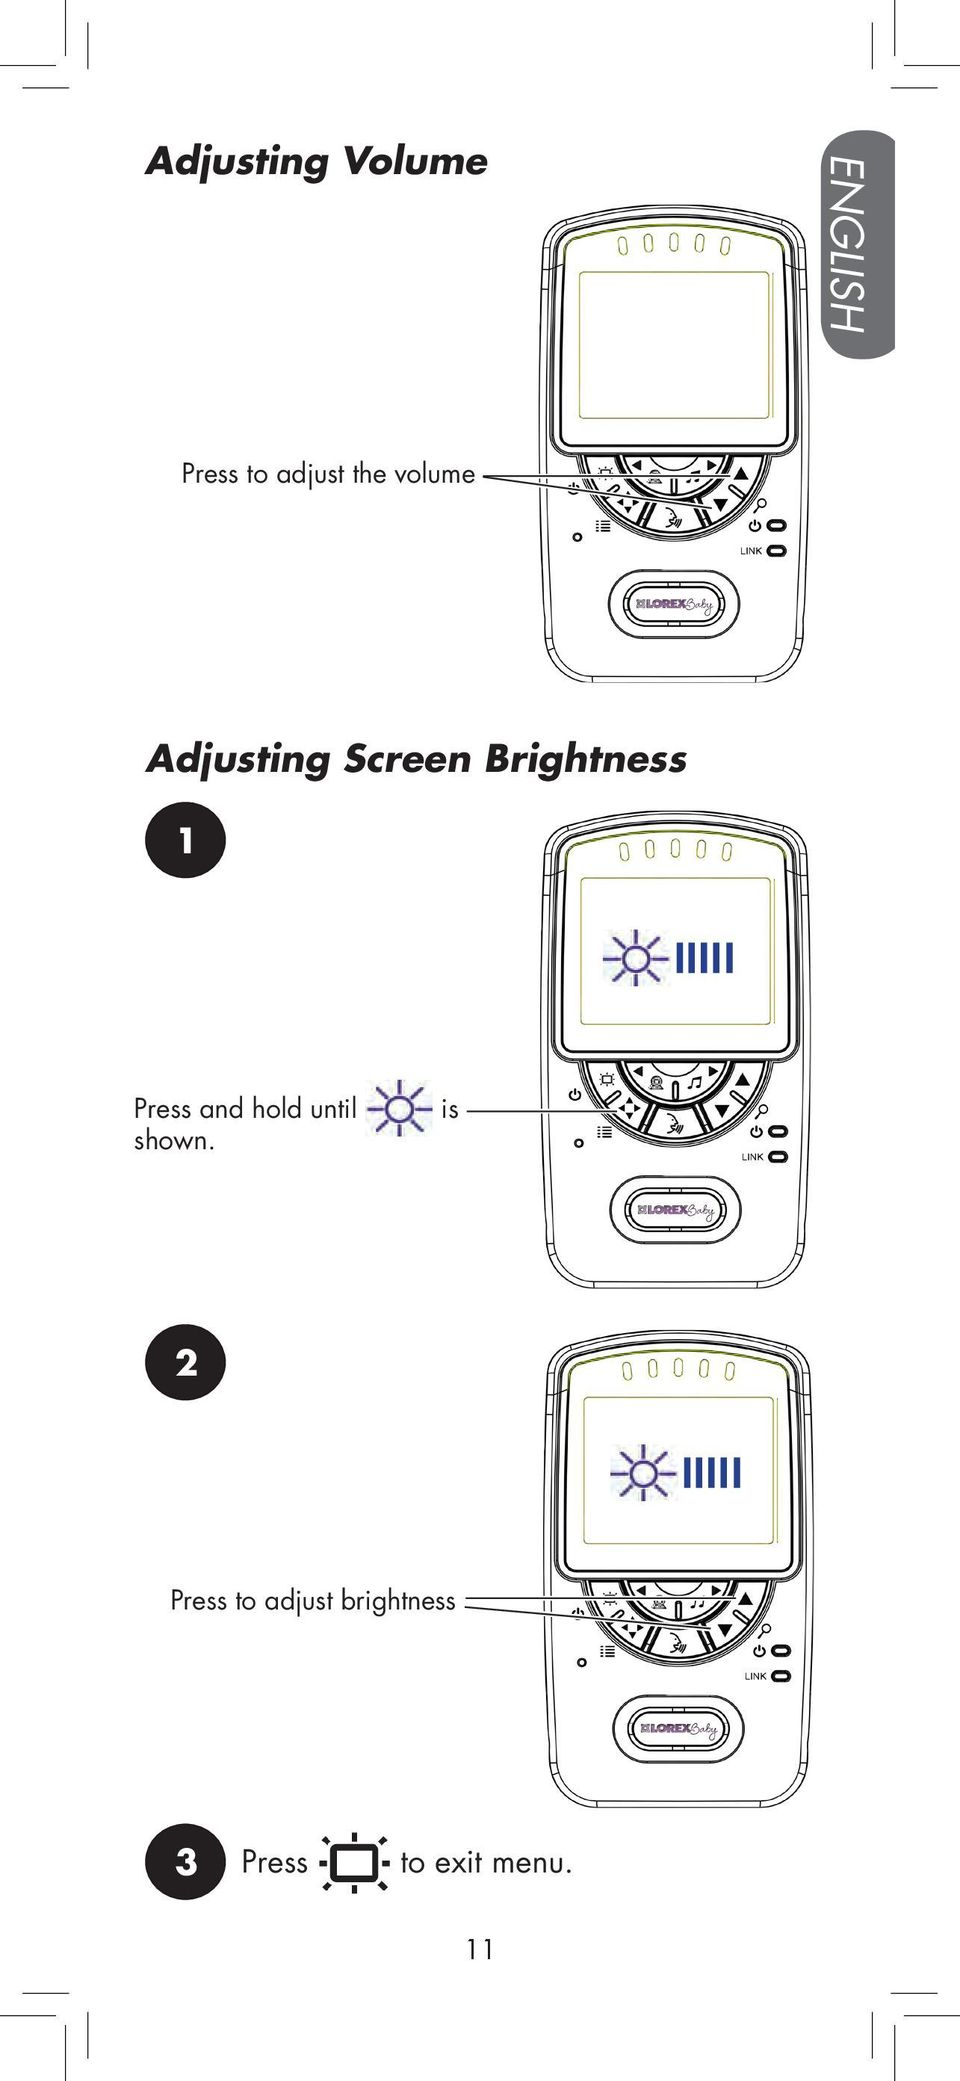 Brightness Press and hold until shown.